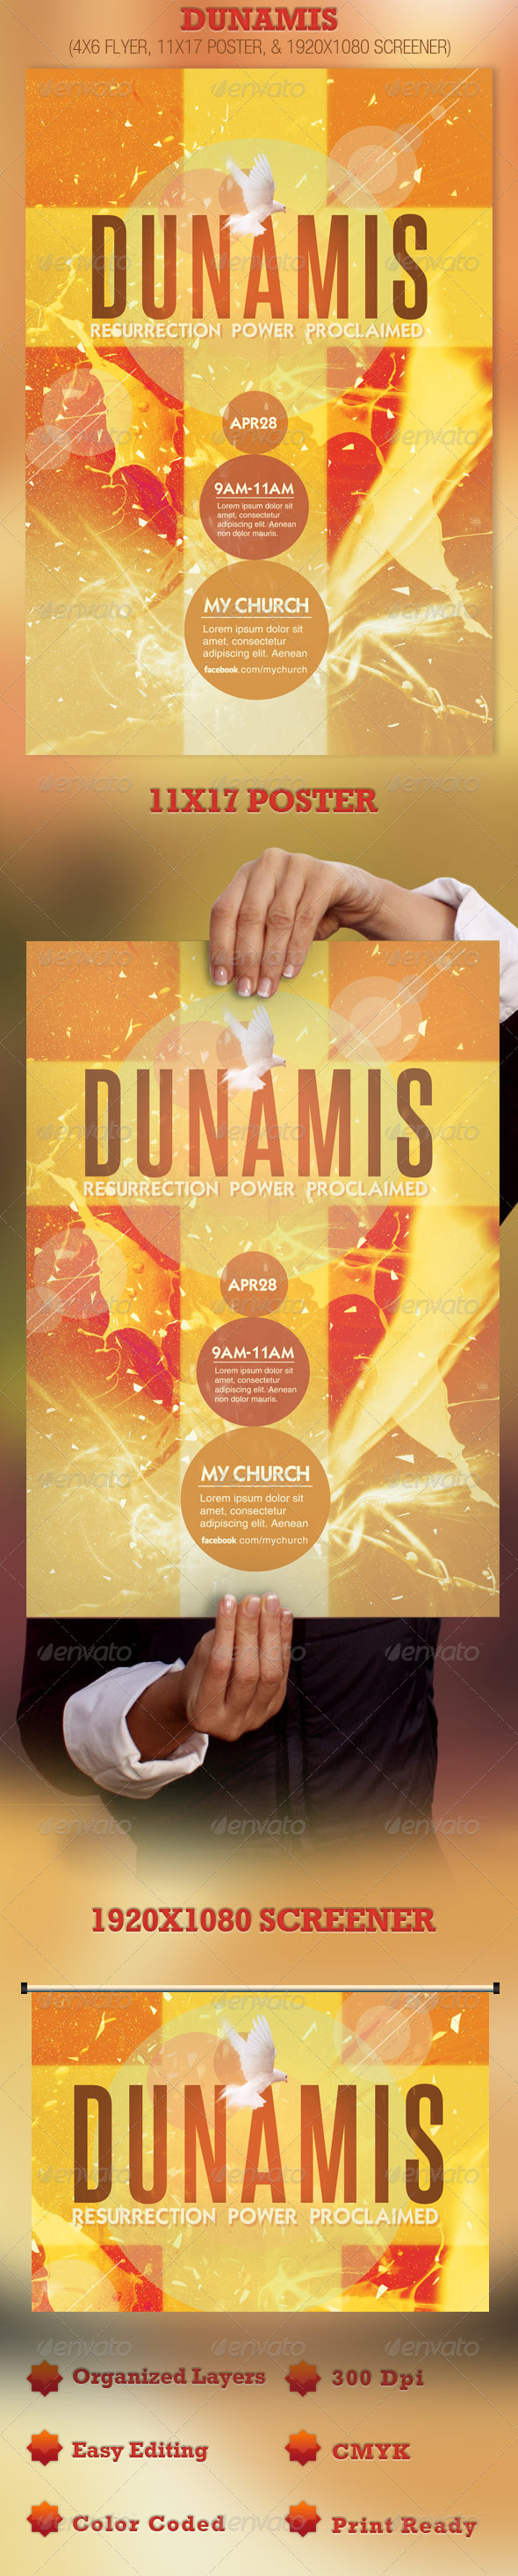 Dunamis Flyer, Poster and Screener Template - Church Flyers